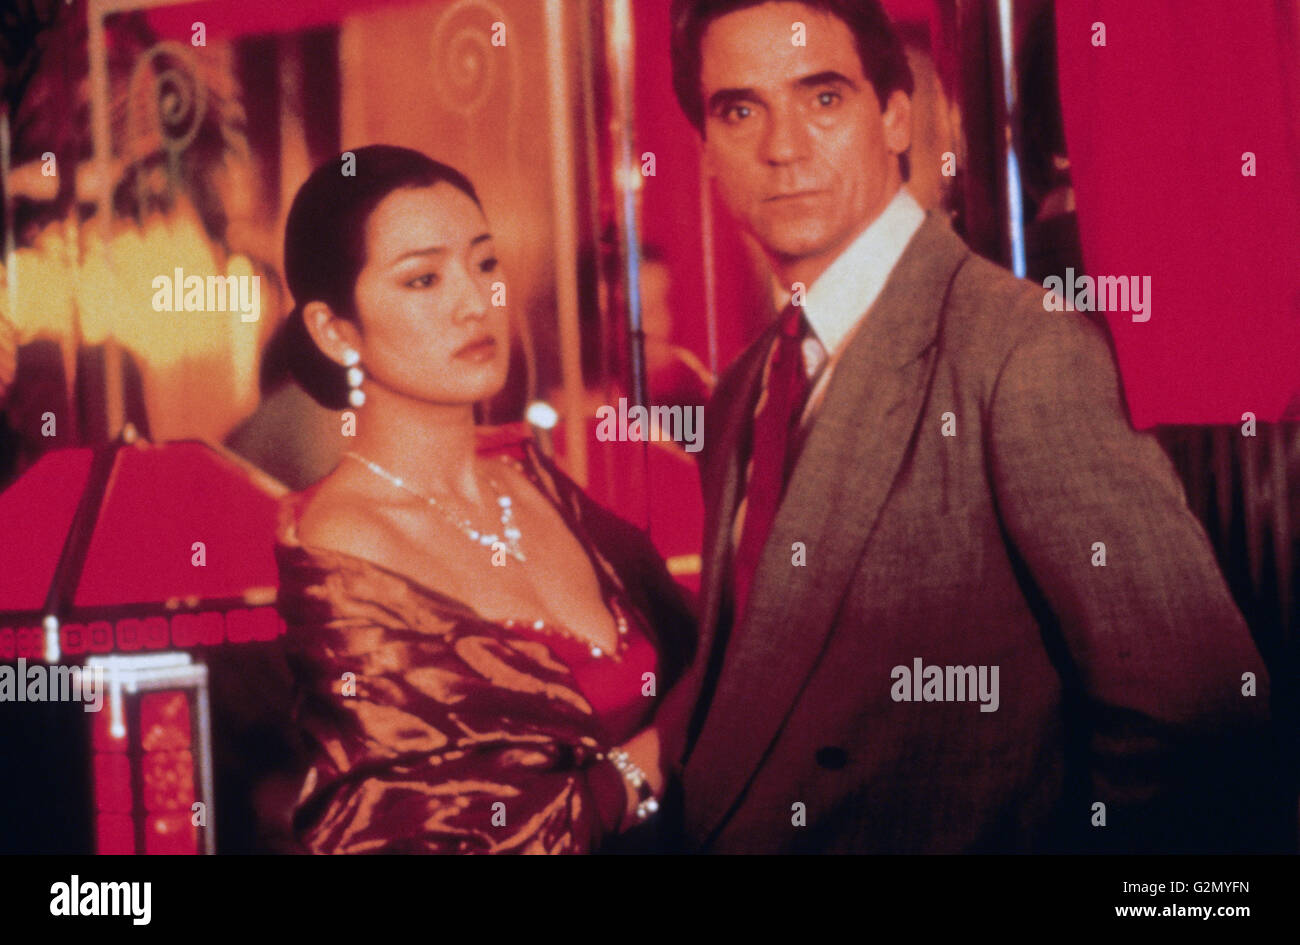 Chinese Box, Jeremy Irons, Gong li, 1997 Stockbild